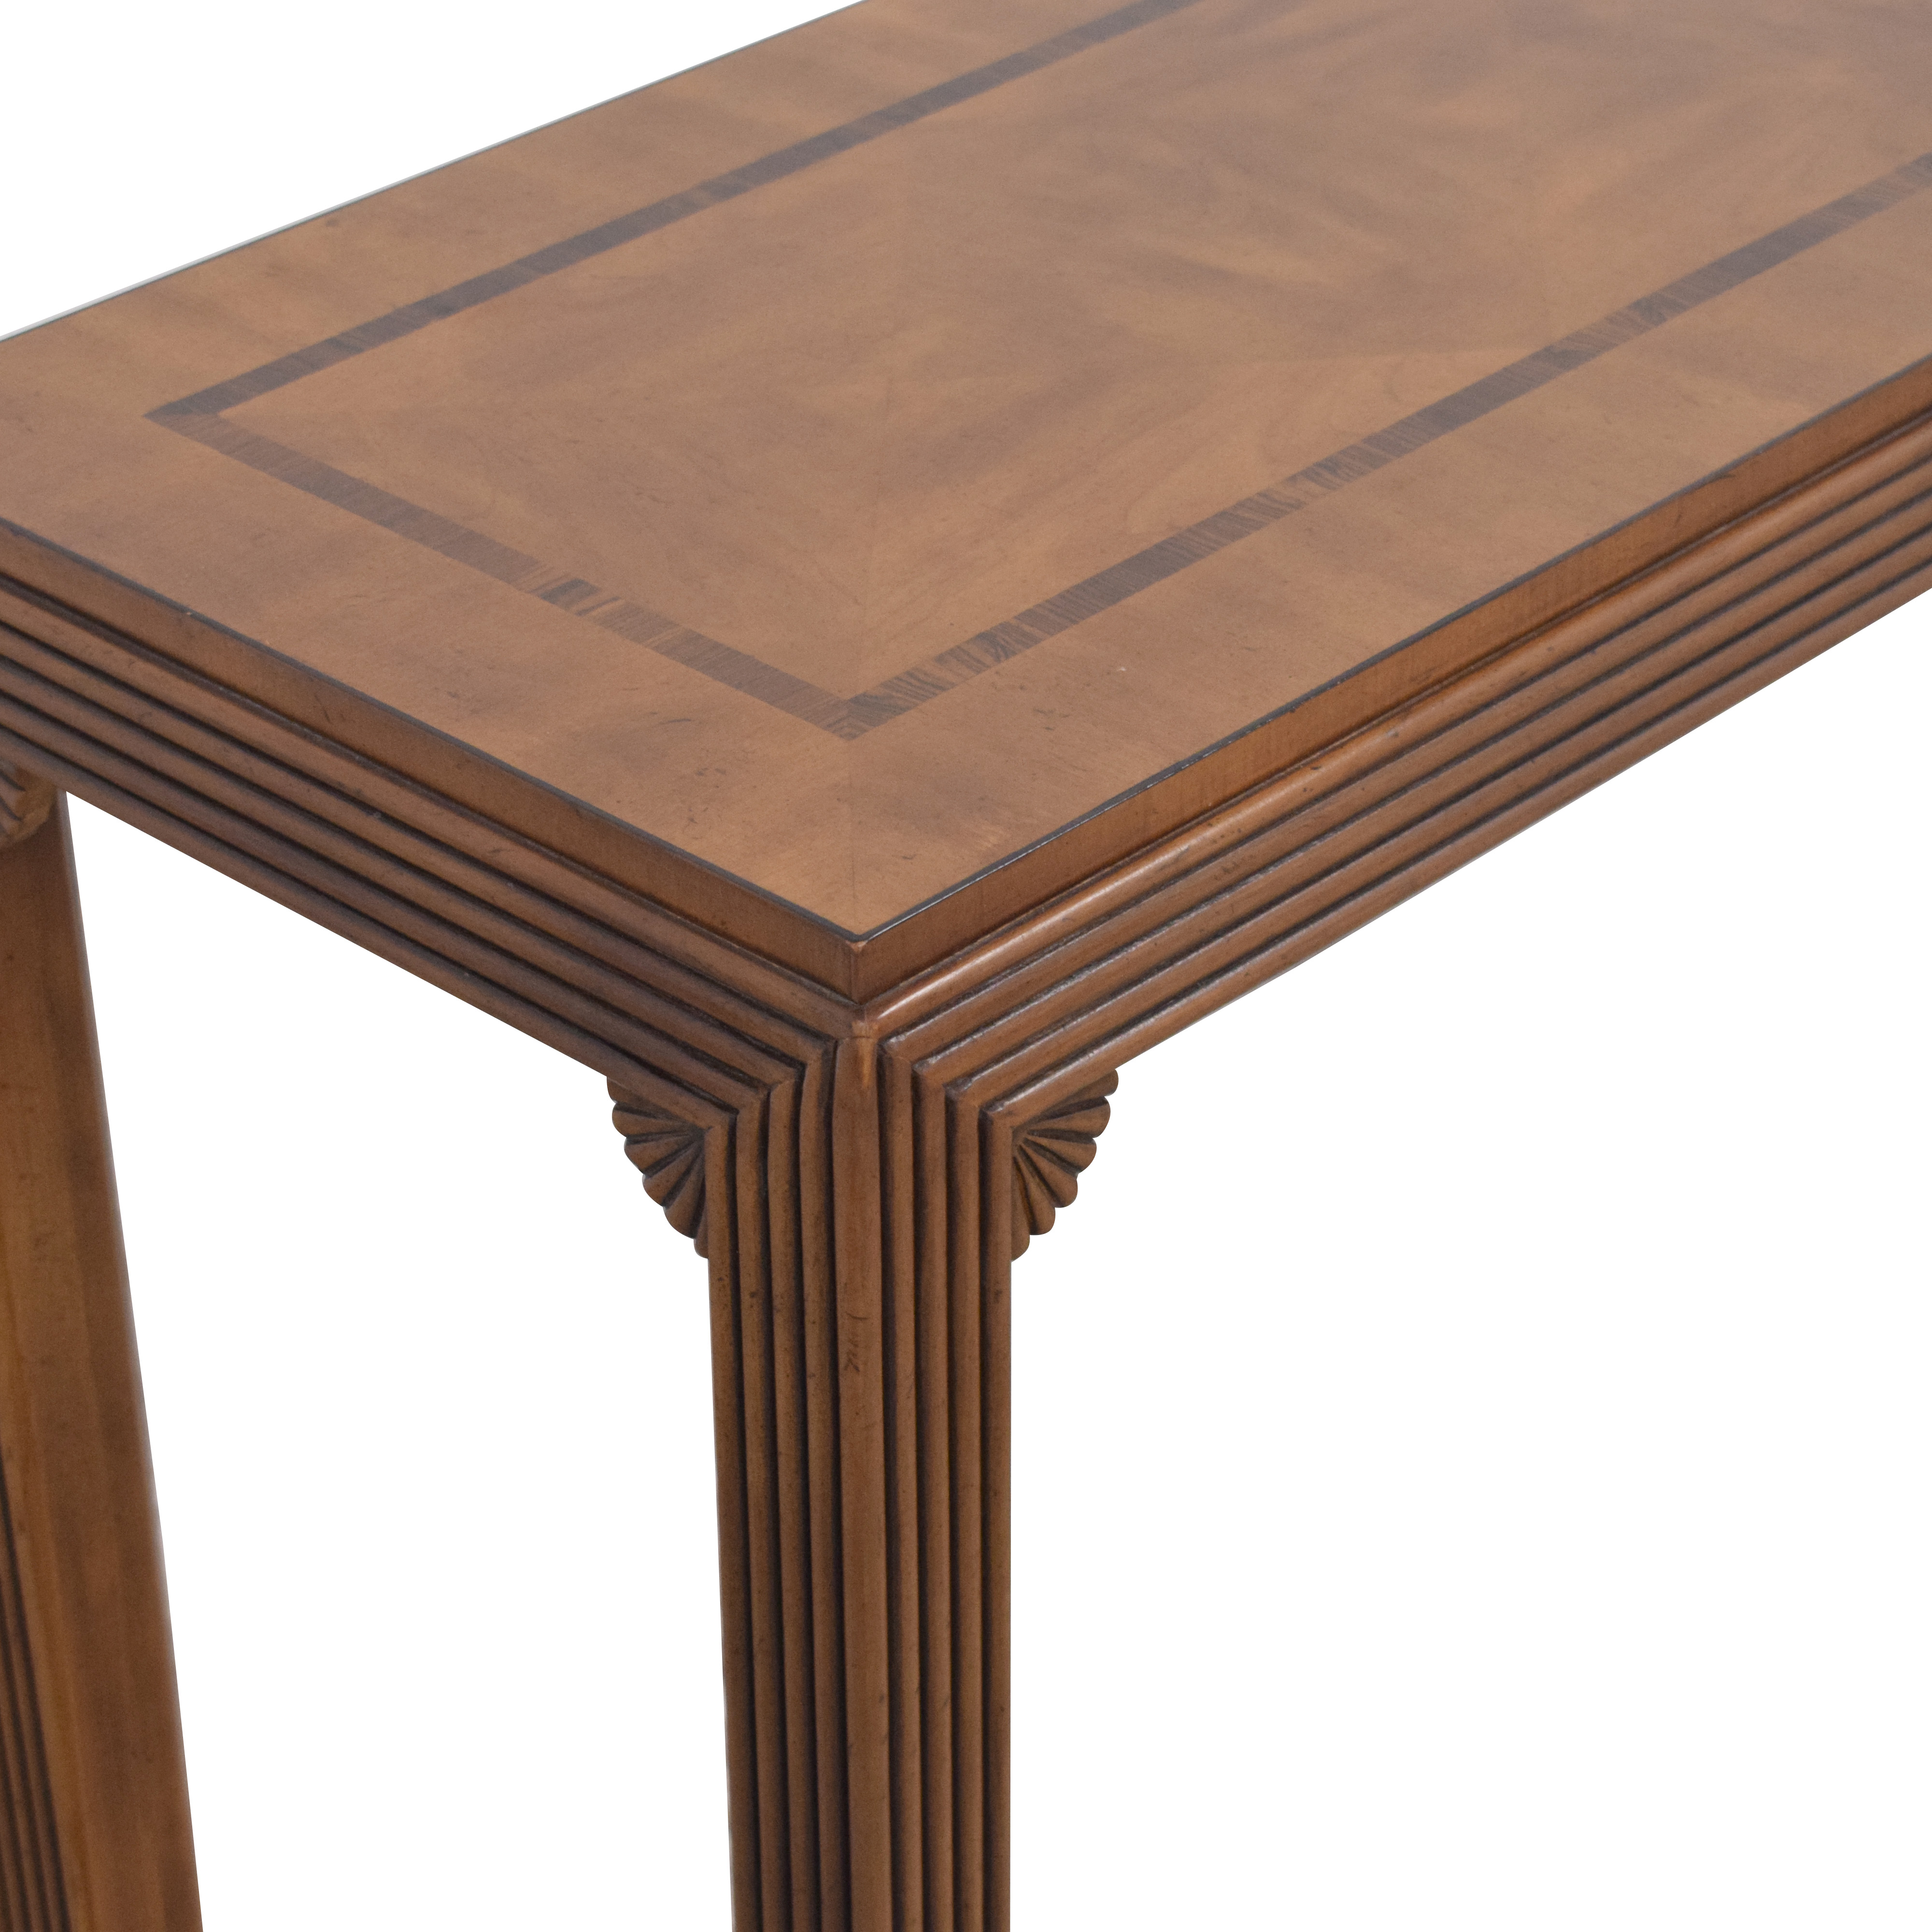 Drexel Heritage Drexel Heritage Console Table dimensions